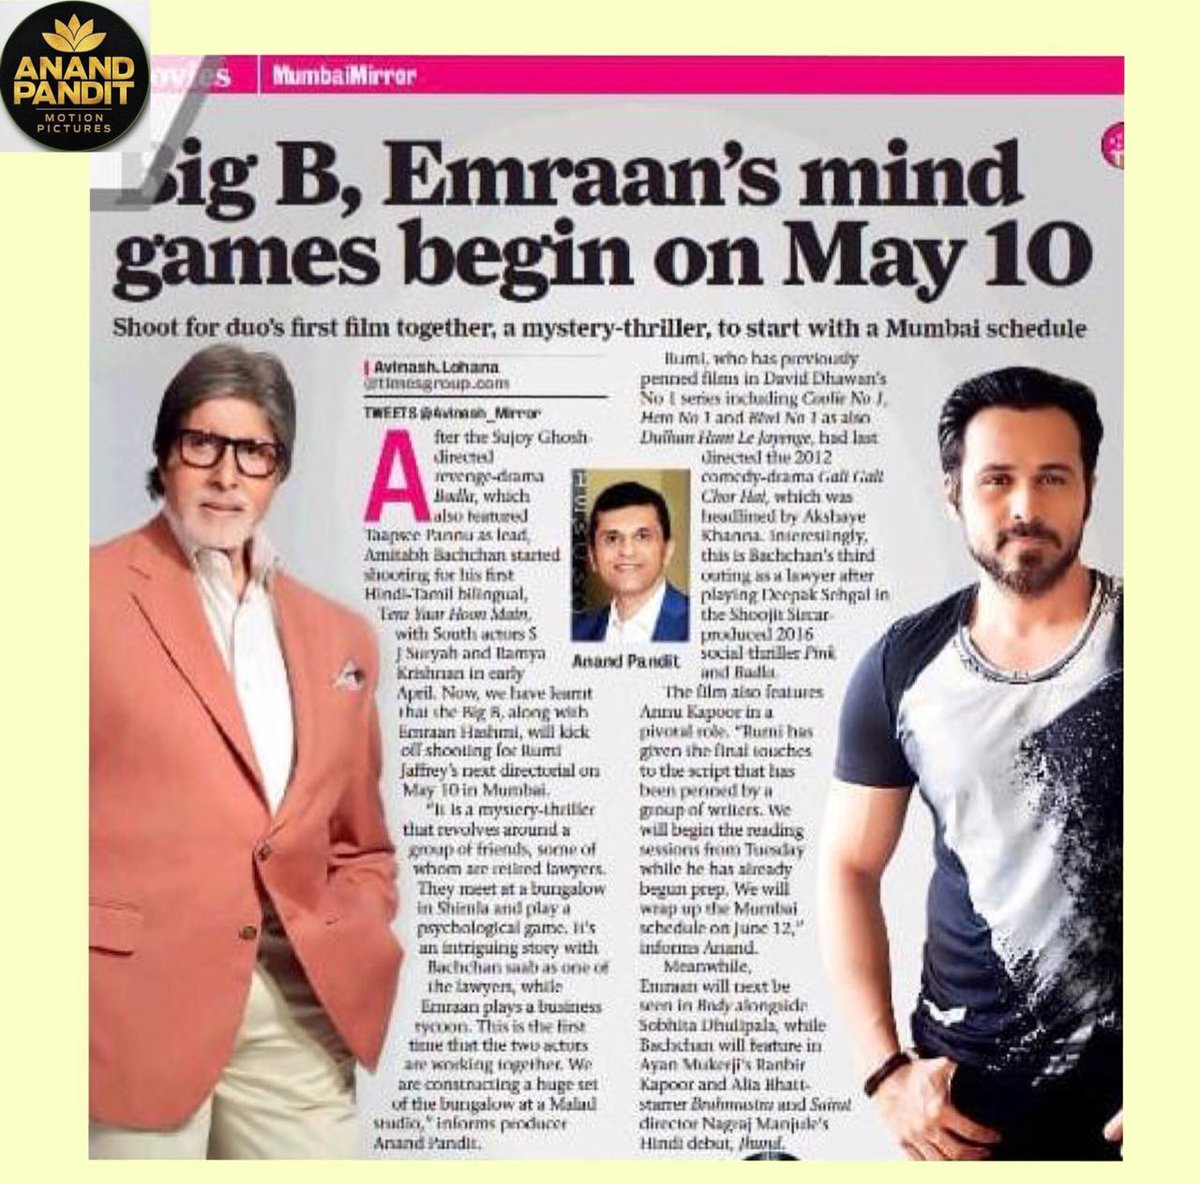 Excited for new beginnings as a never before seen team comes together to entertain you!  #NewBeginnings @apmpictures #AnandPanditMotionPictures @SrBachchan @emraanhashmi https://t.co/Ib6I2zuZpL